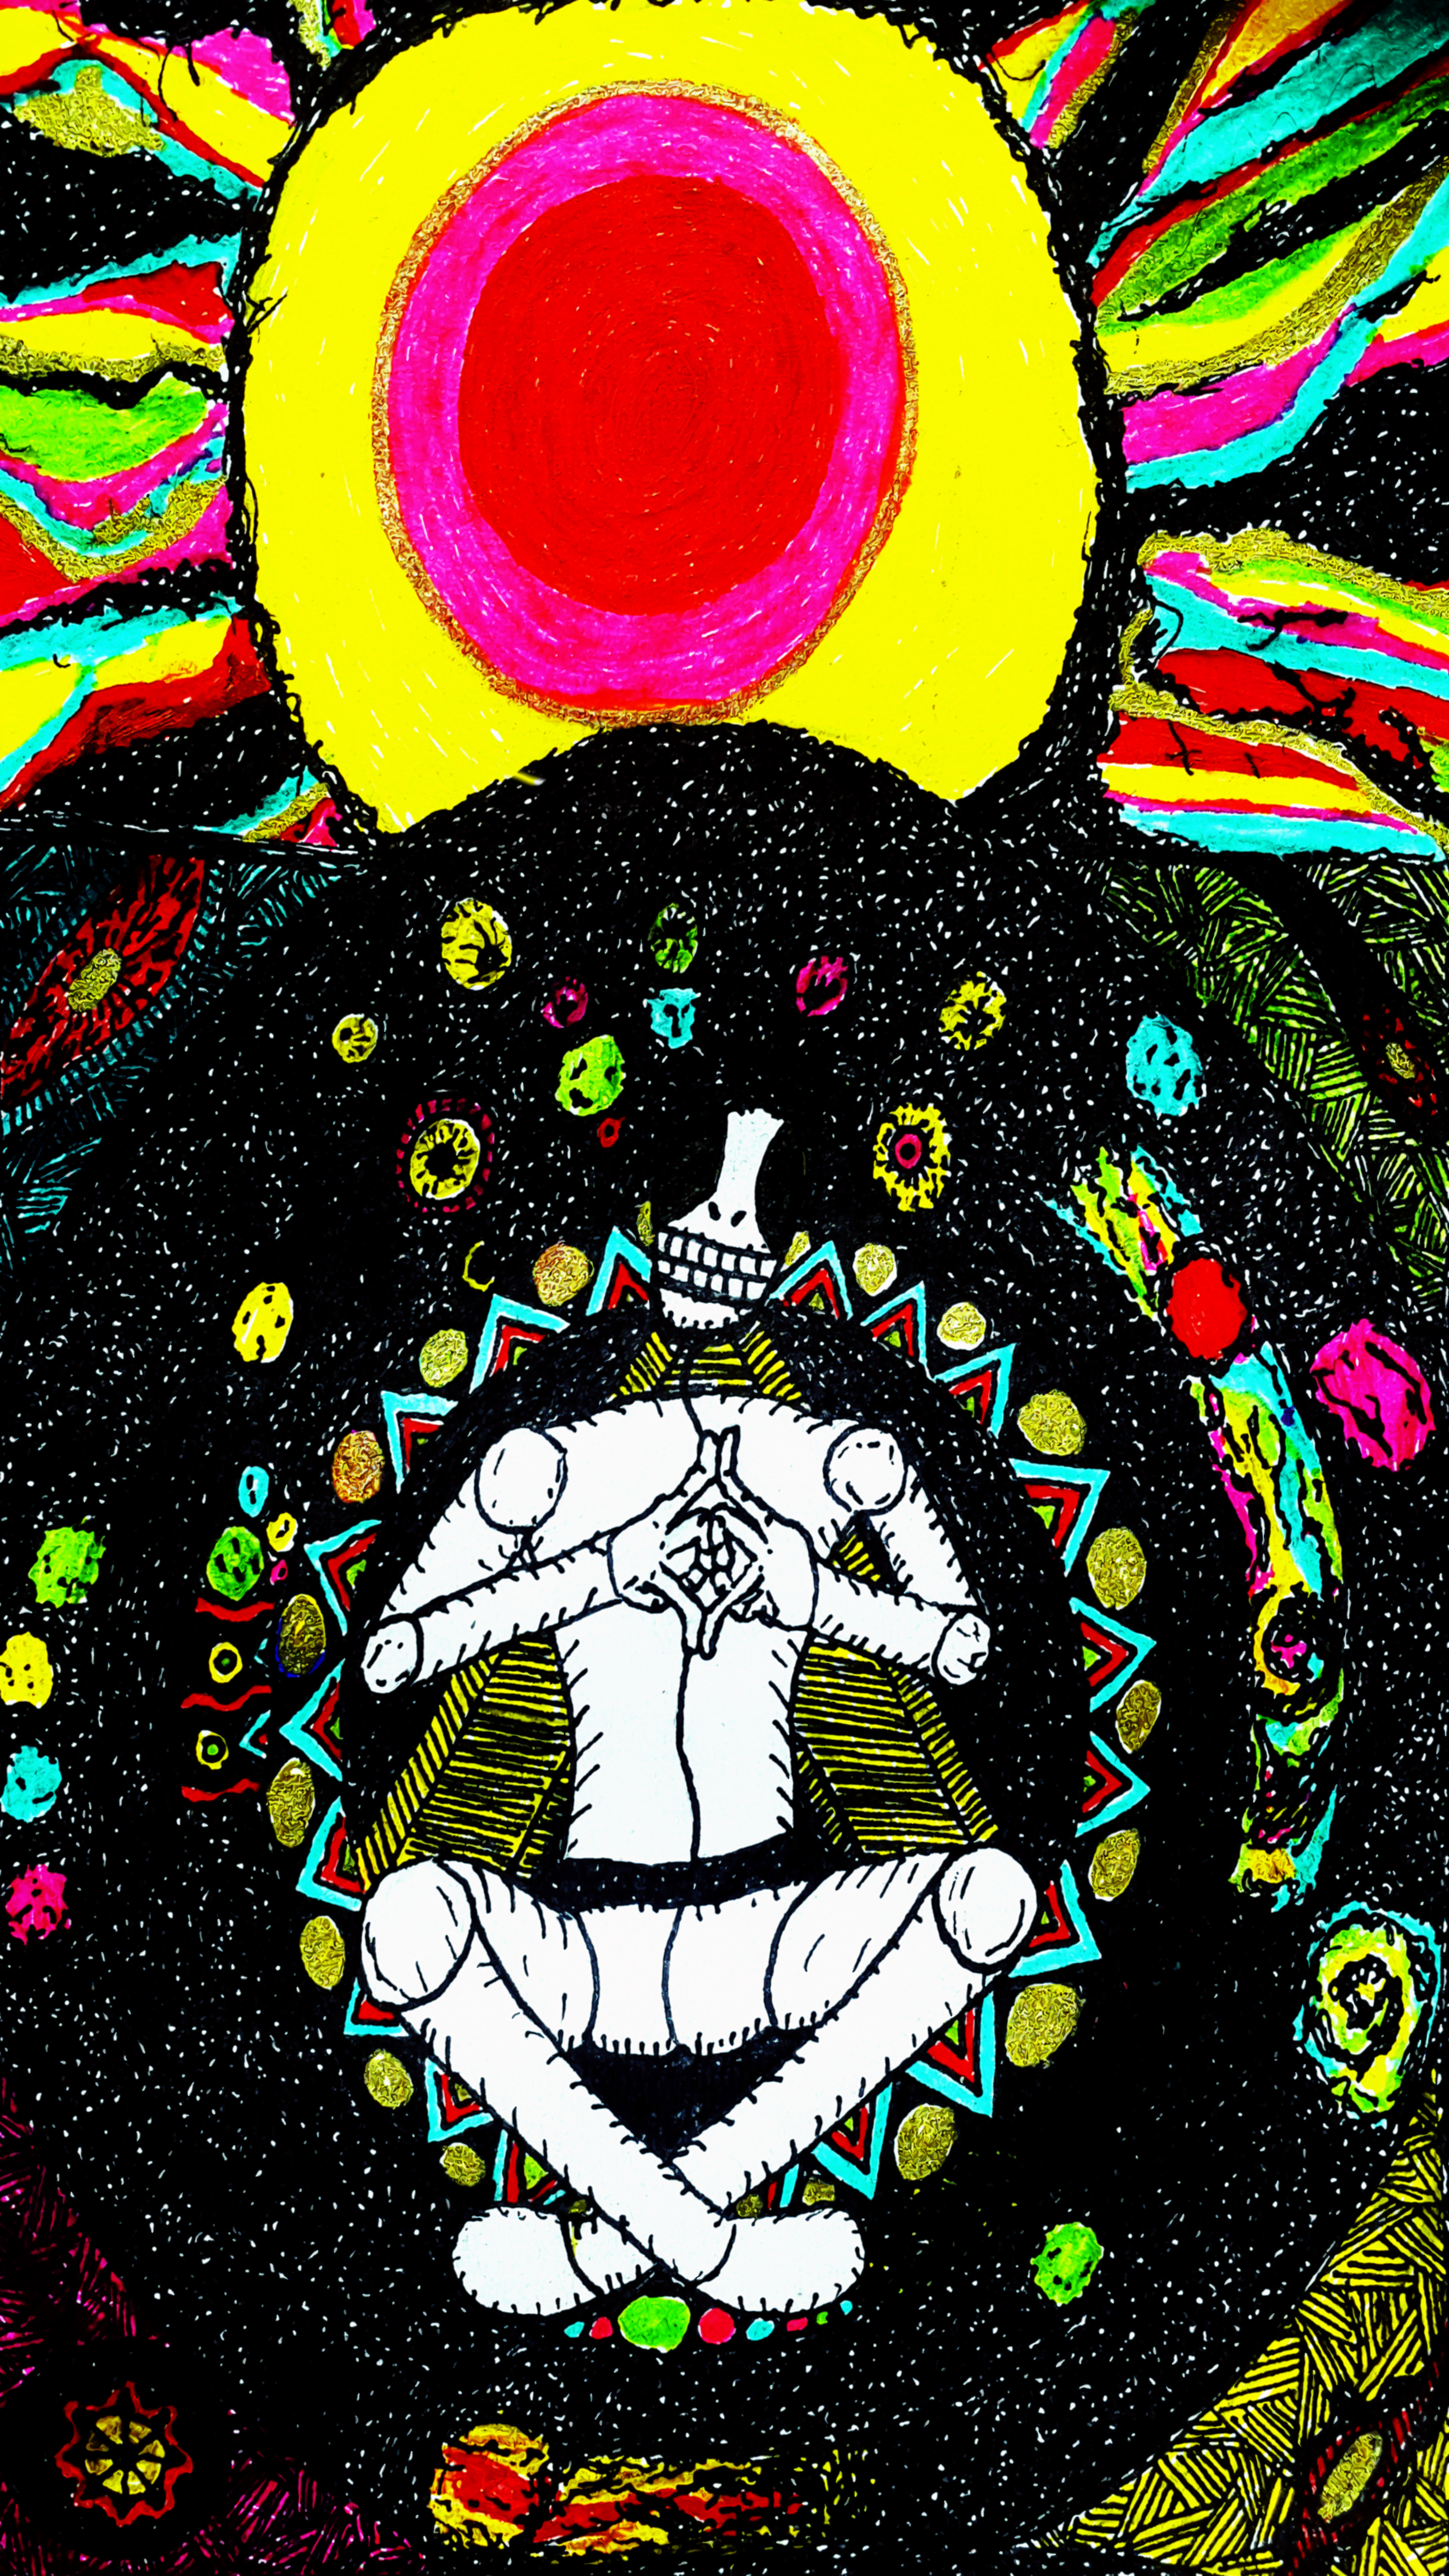 General 2988x5312 space stars universe Color Burst colorful Colors (Album) spiritual eyes galaxy people meditation psychedelic trippy drawing sketches pen